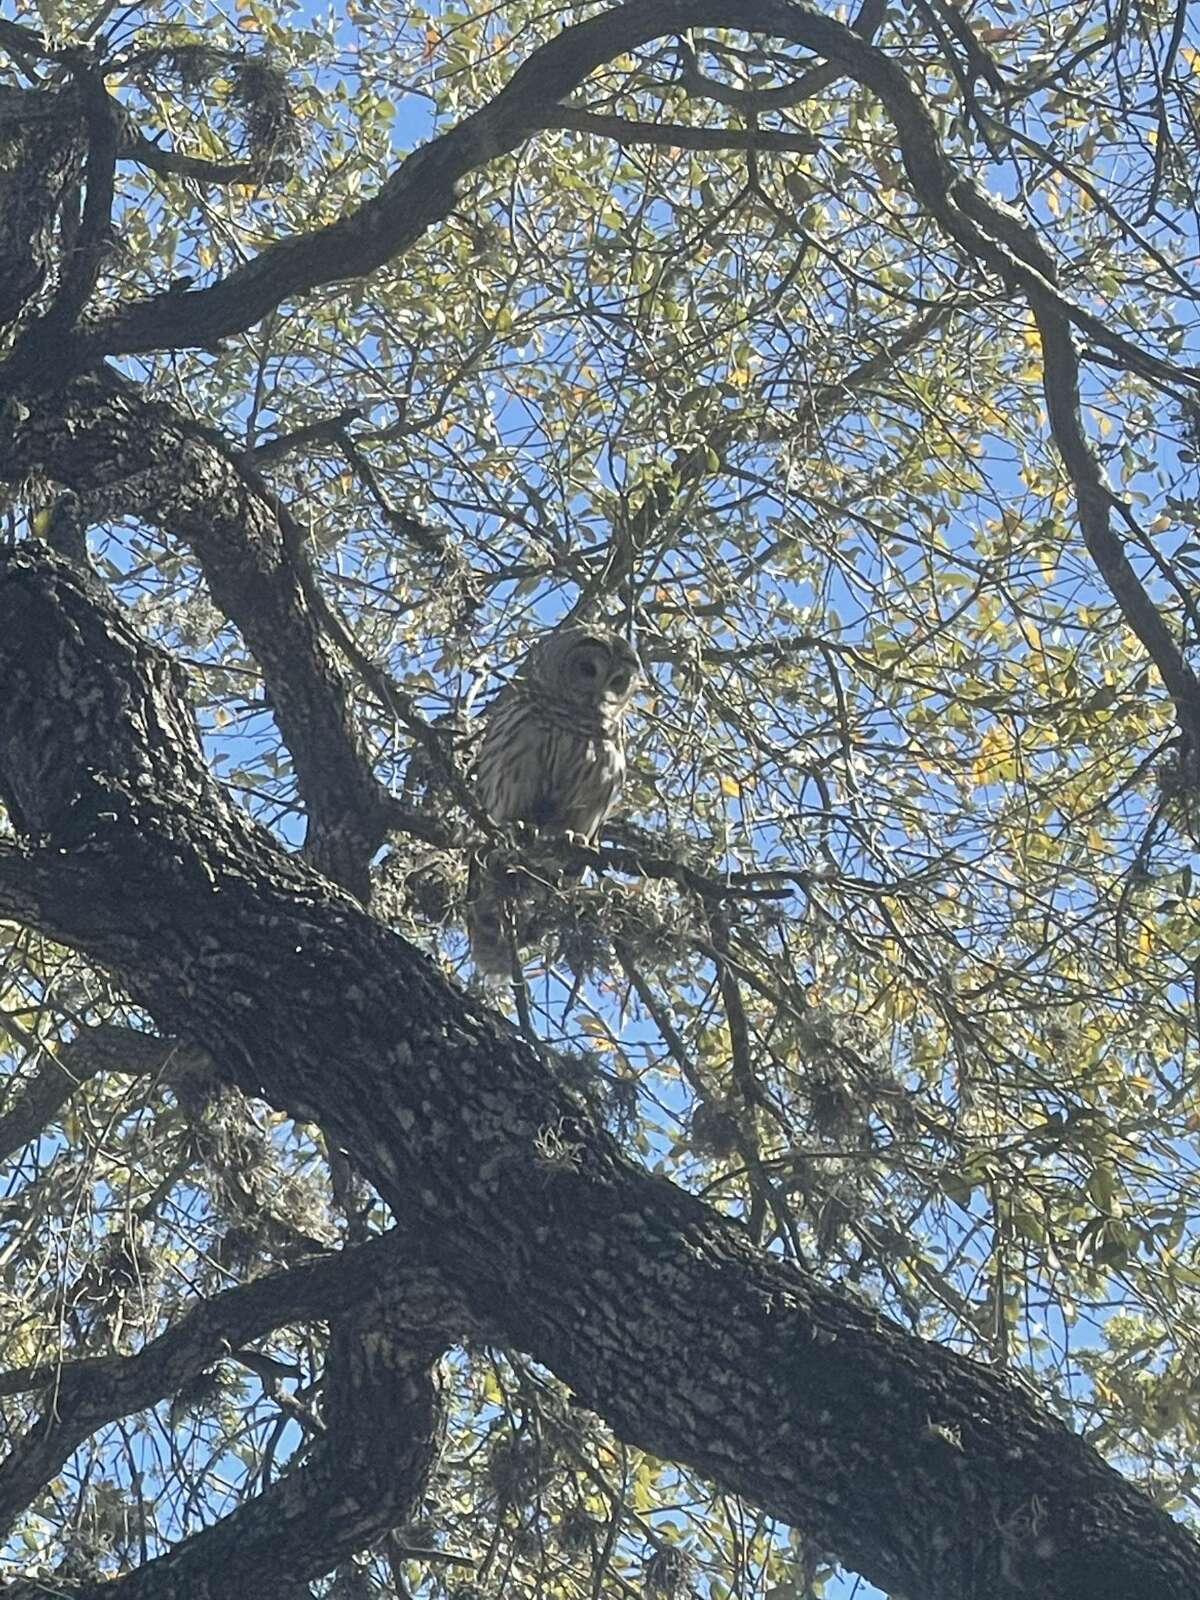 Joshua Giles, the general manager for Hops & Hounds, told MySA.com the family consists of about 3 to 4 owls, and one of them is aggressive.